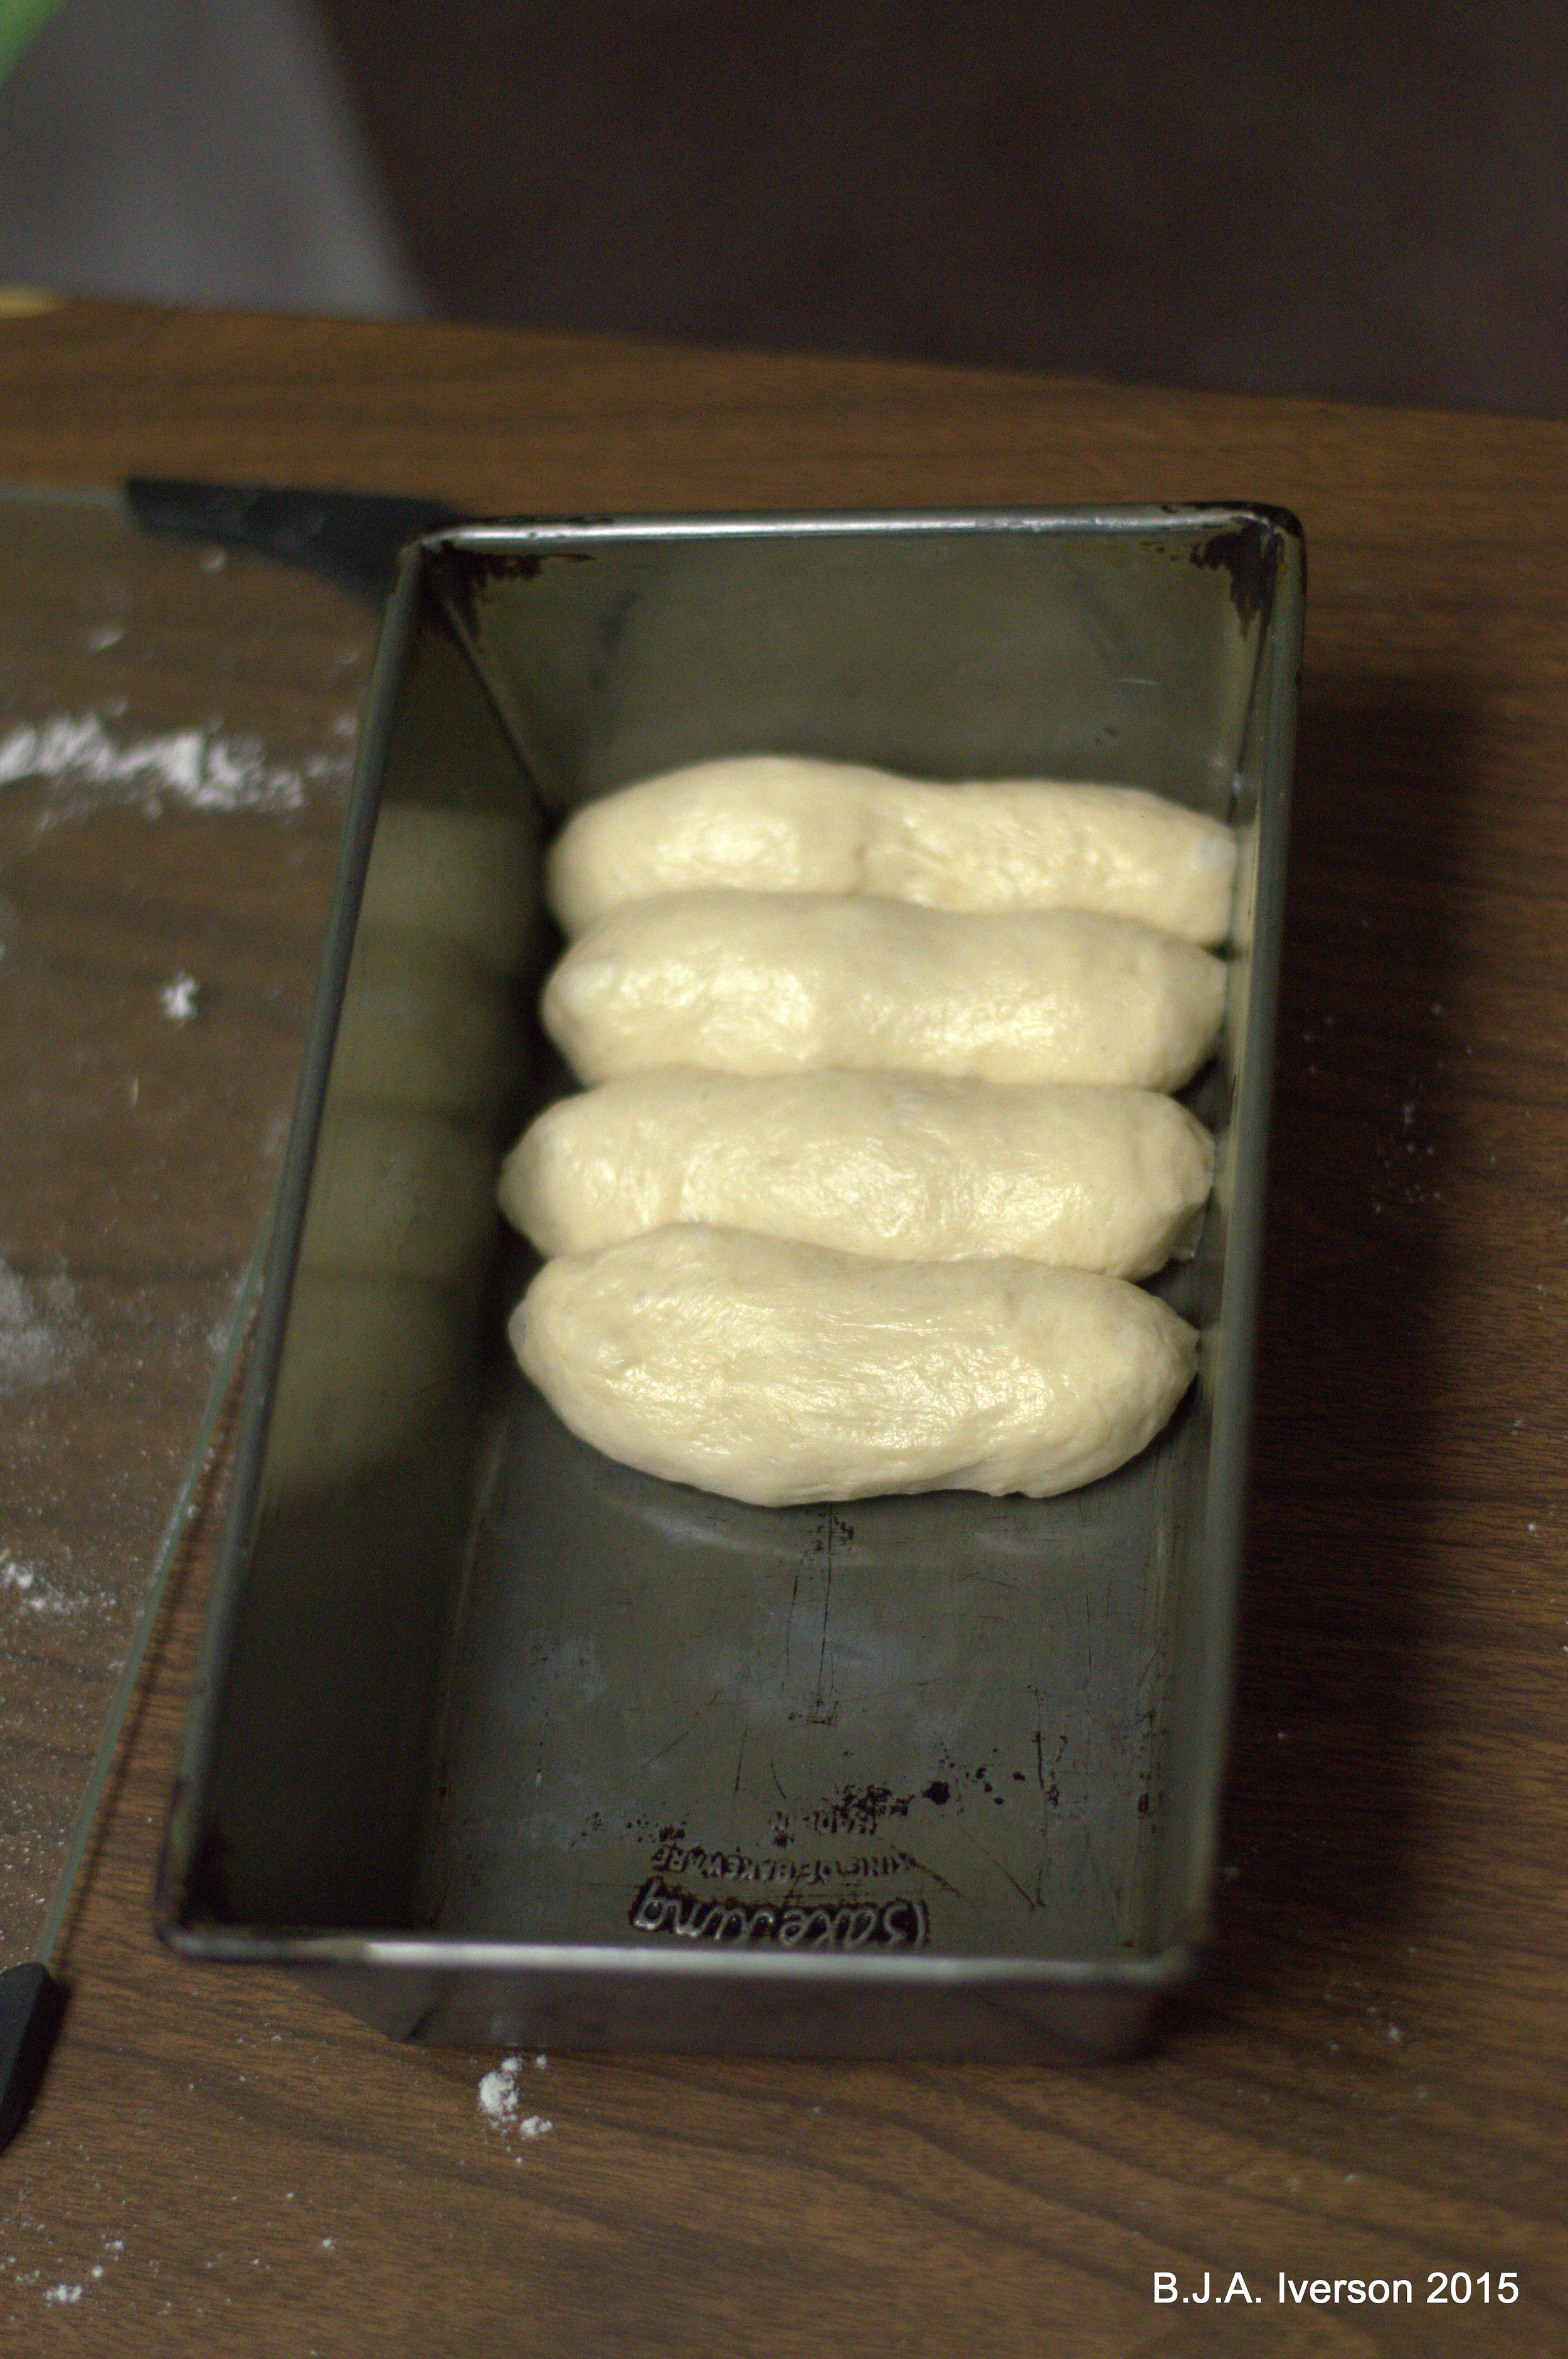 One loaf pan will hold 7-8 finger rolls.